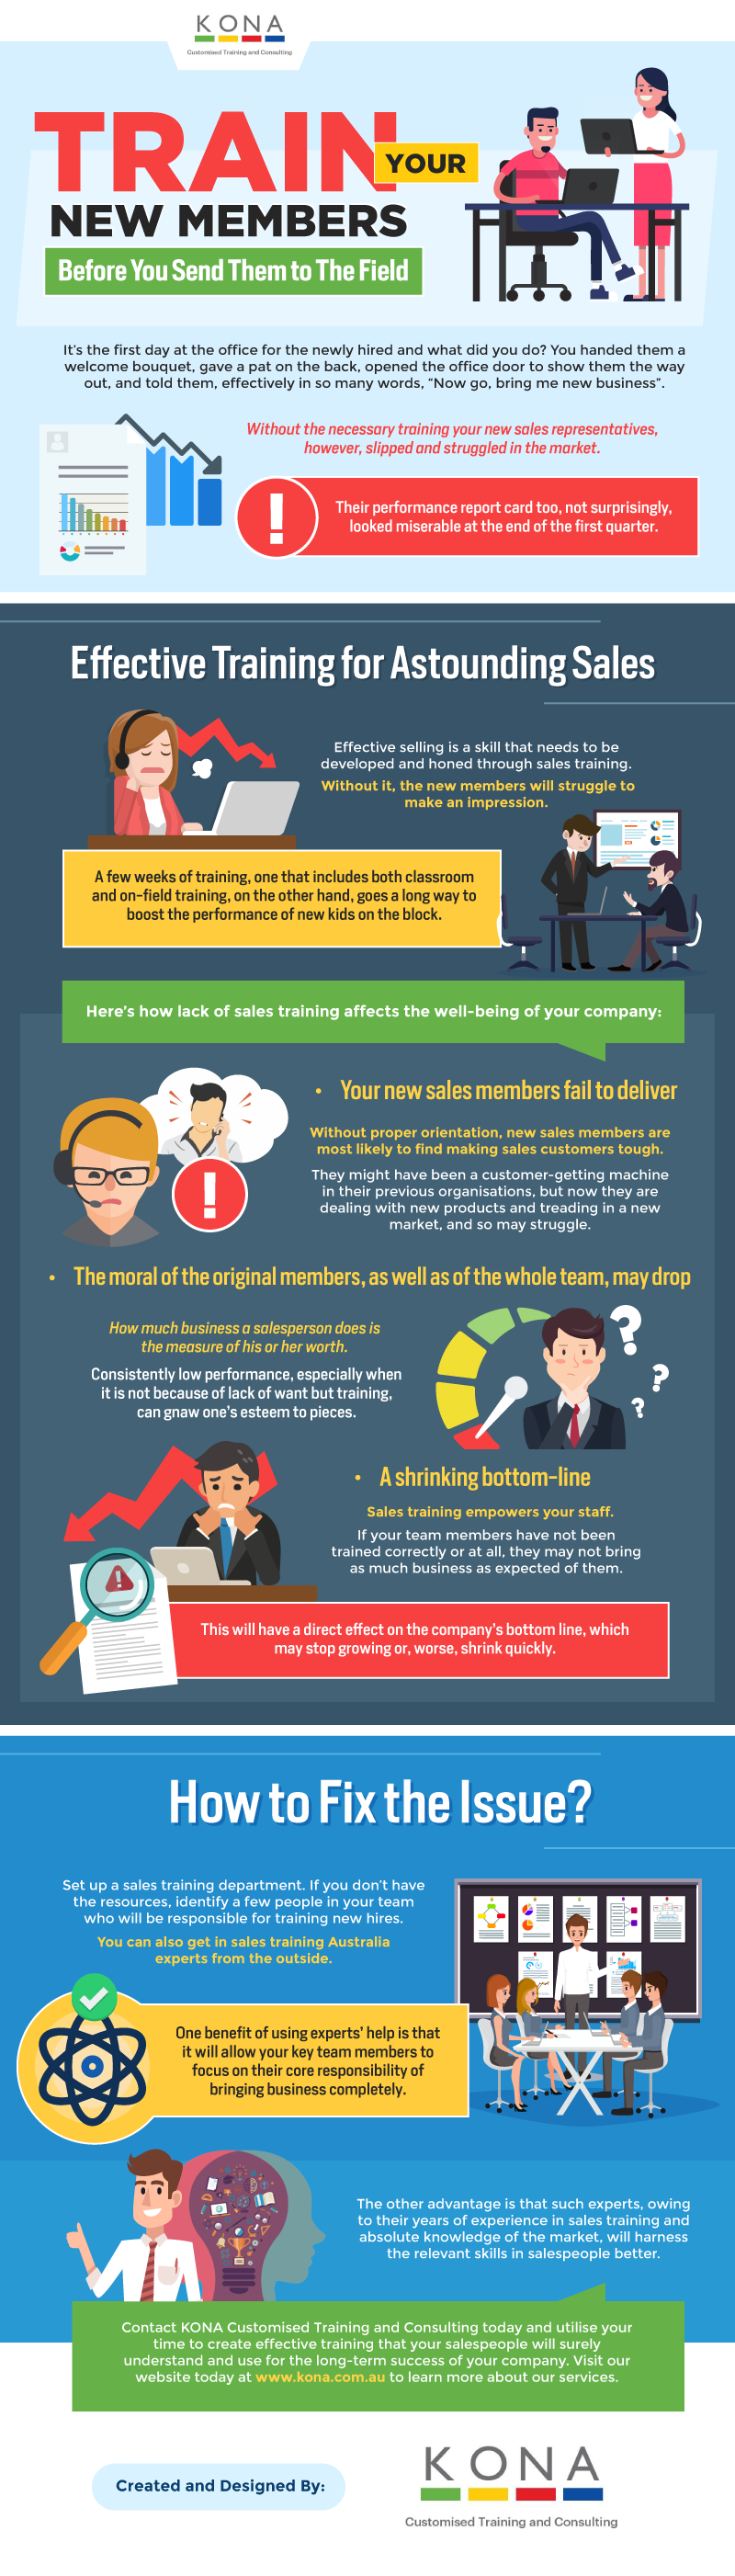 Train Your New Members Before You Send Them to The Field - Infographic